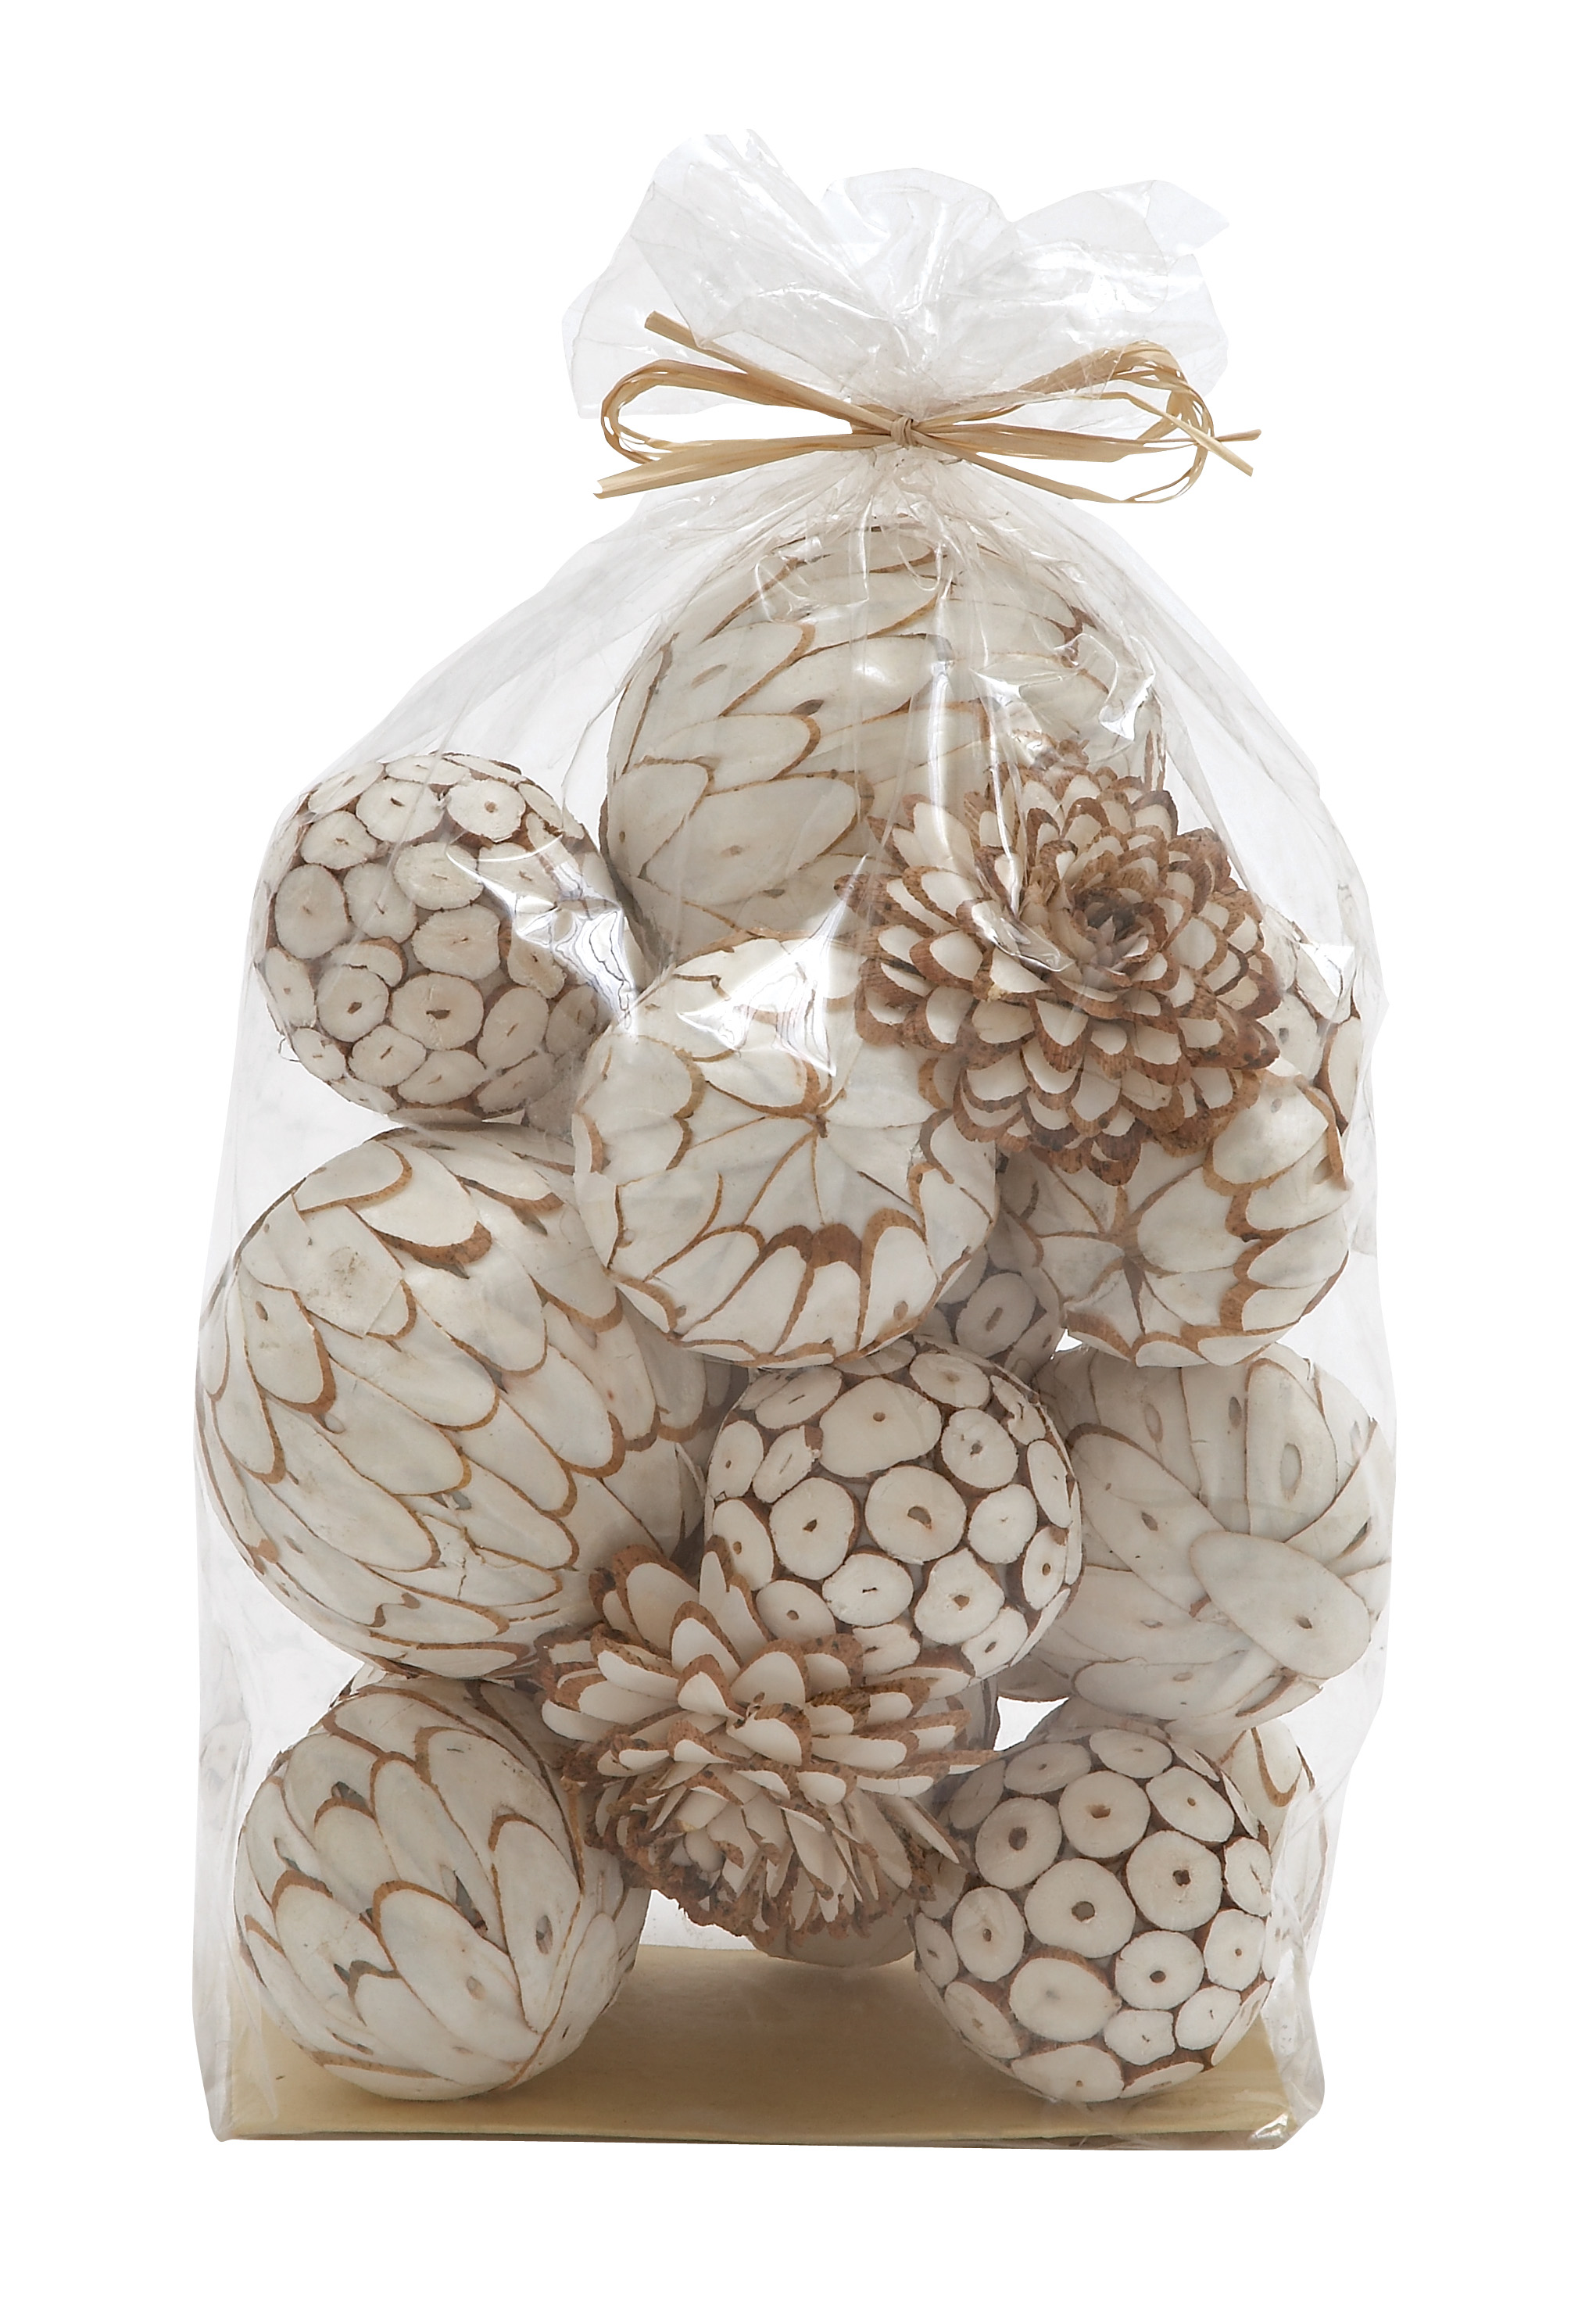 Stylish And Simple Inspired Decorative Dried Sola Ball Bag Home Accent Decor by Benzara